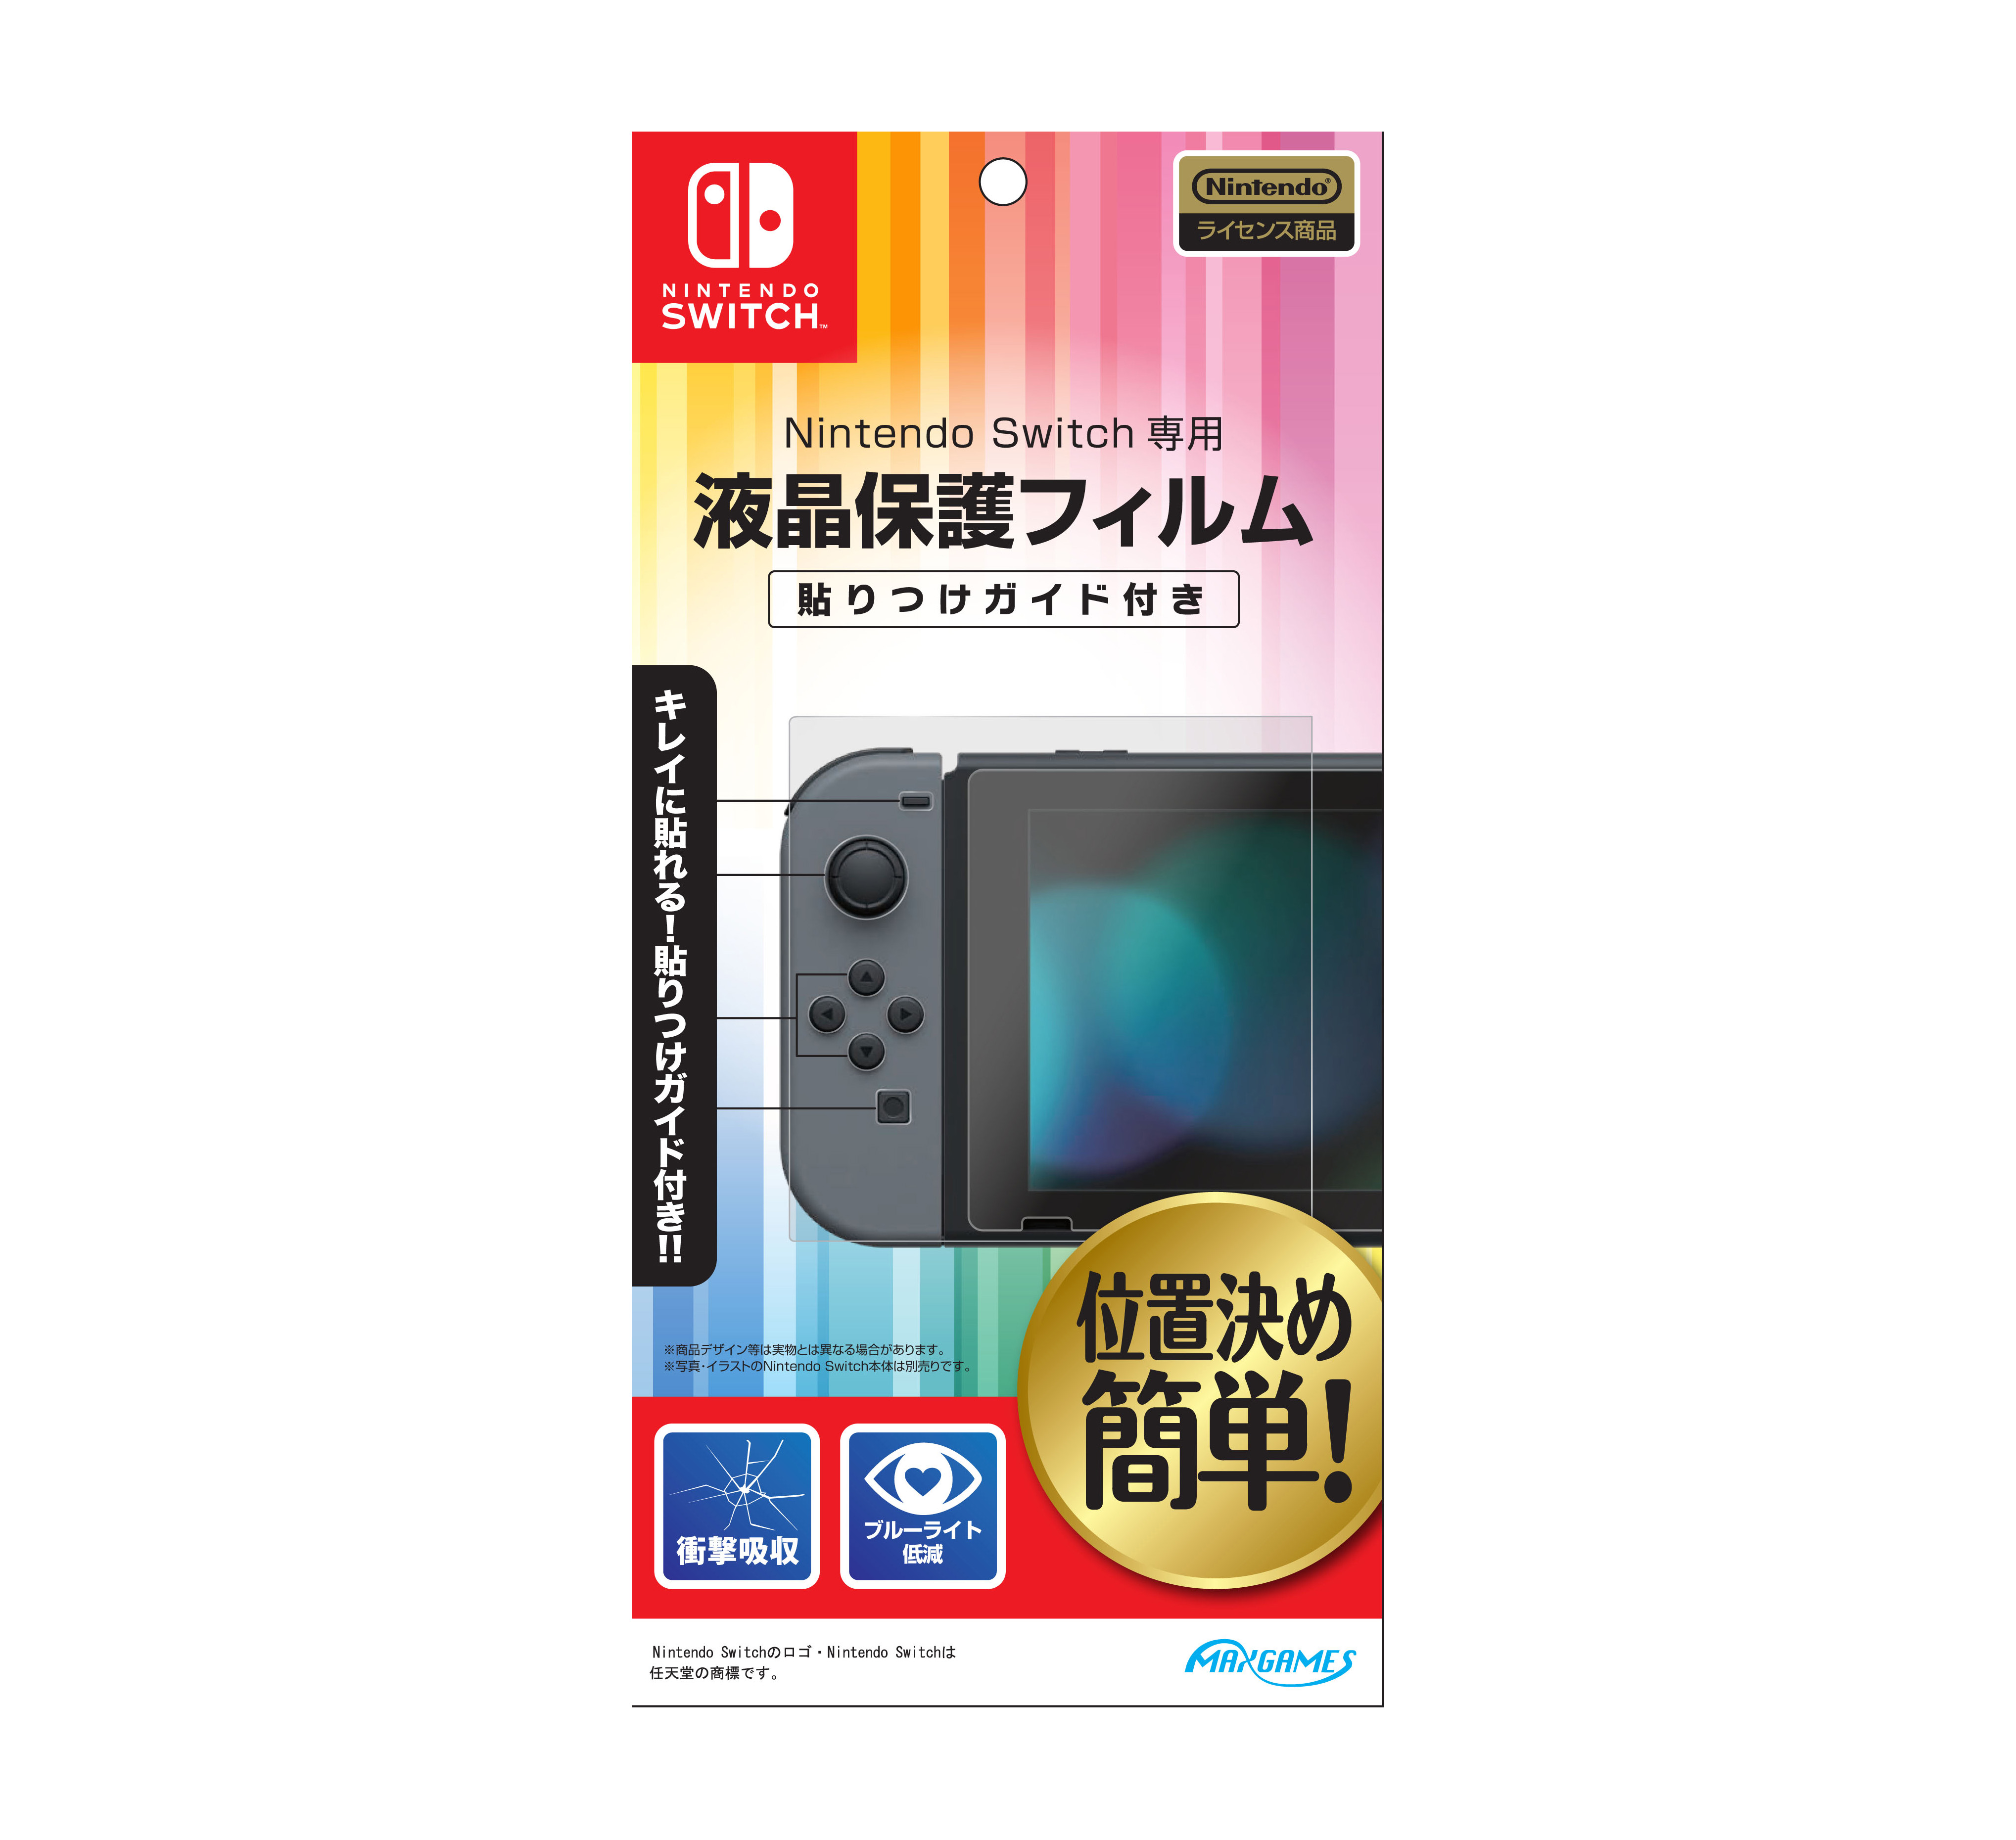 Nintendo Switch専用<br>液晶保護フィルム 貼りつけガイド付き 衝撃吸収